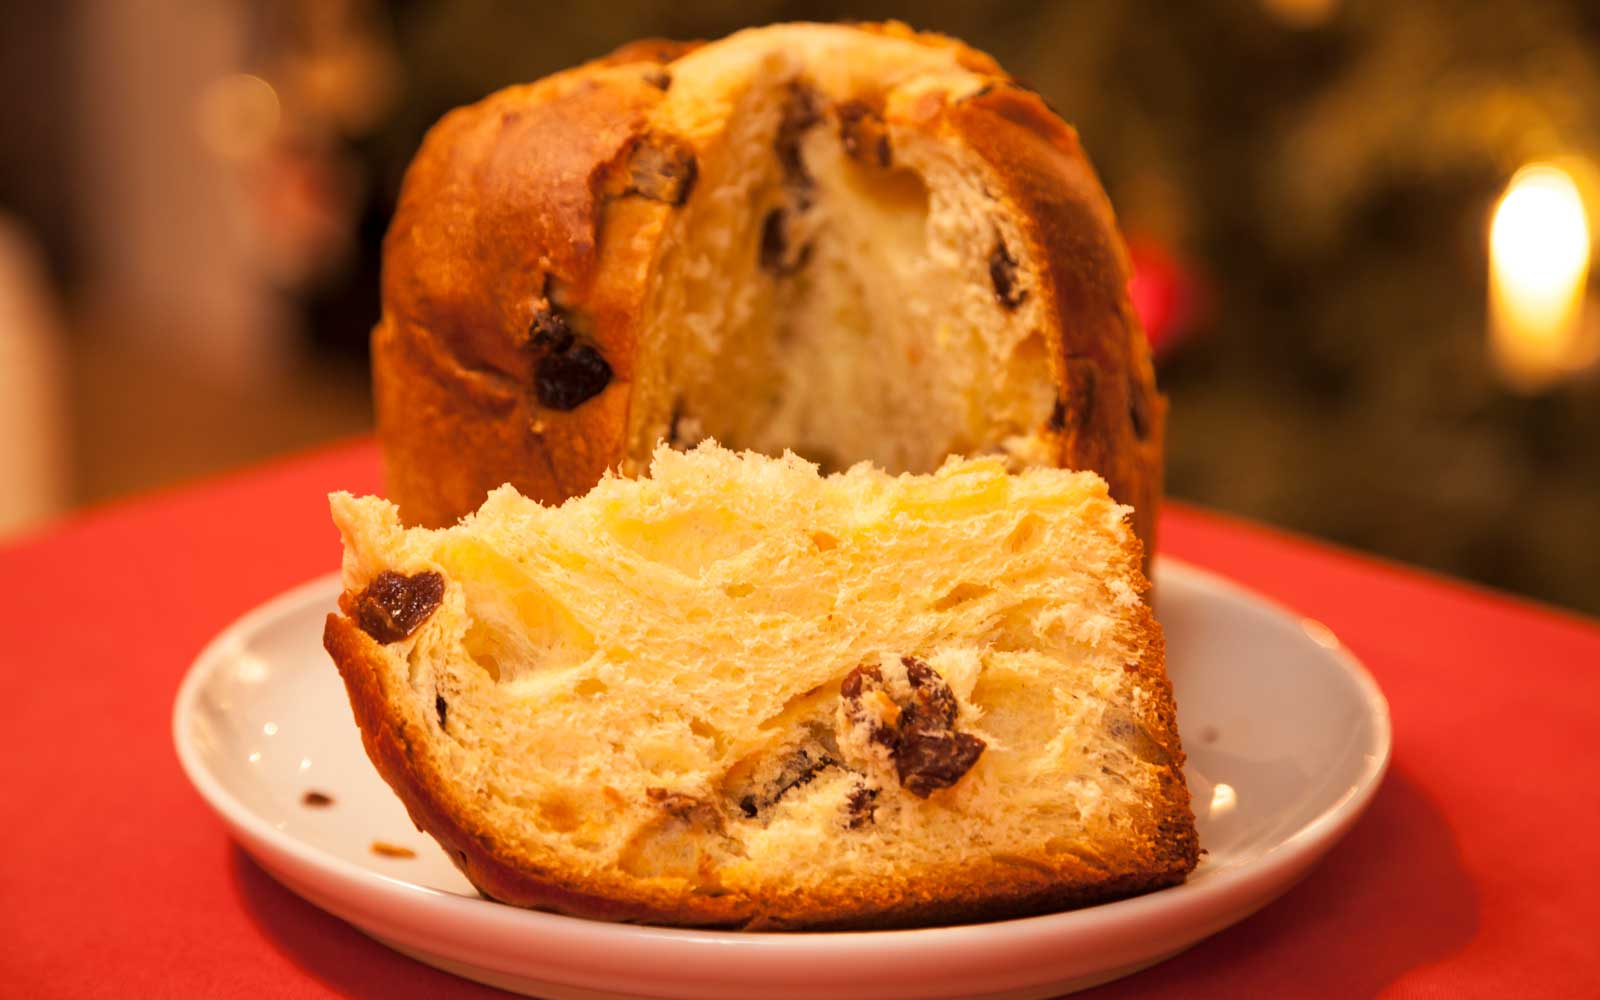 Panettone is a sweet bread that comes laced with candied fruits and raisins.